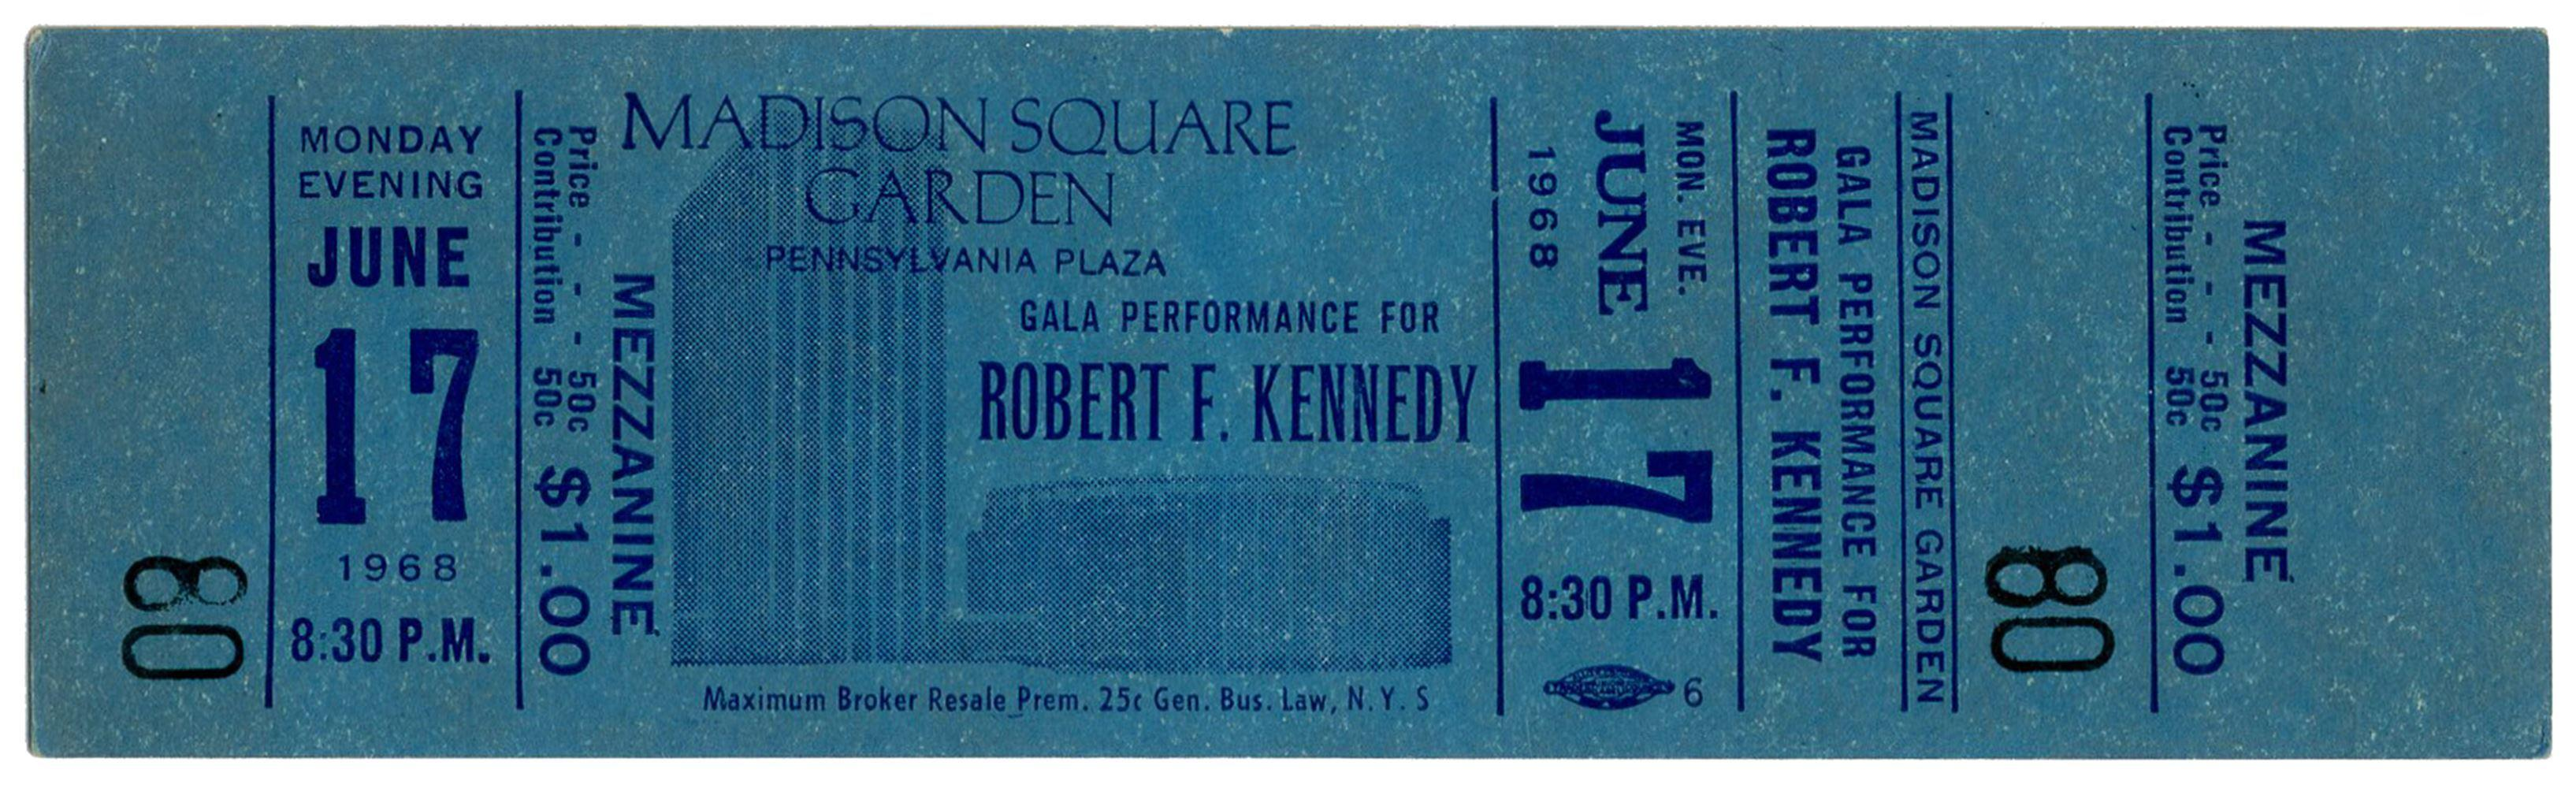 RFK Unused Ticket to the Speech that Never Happened